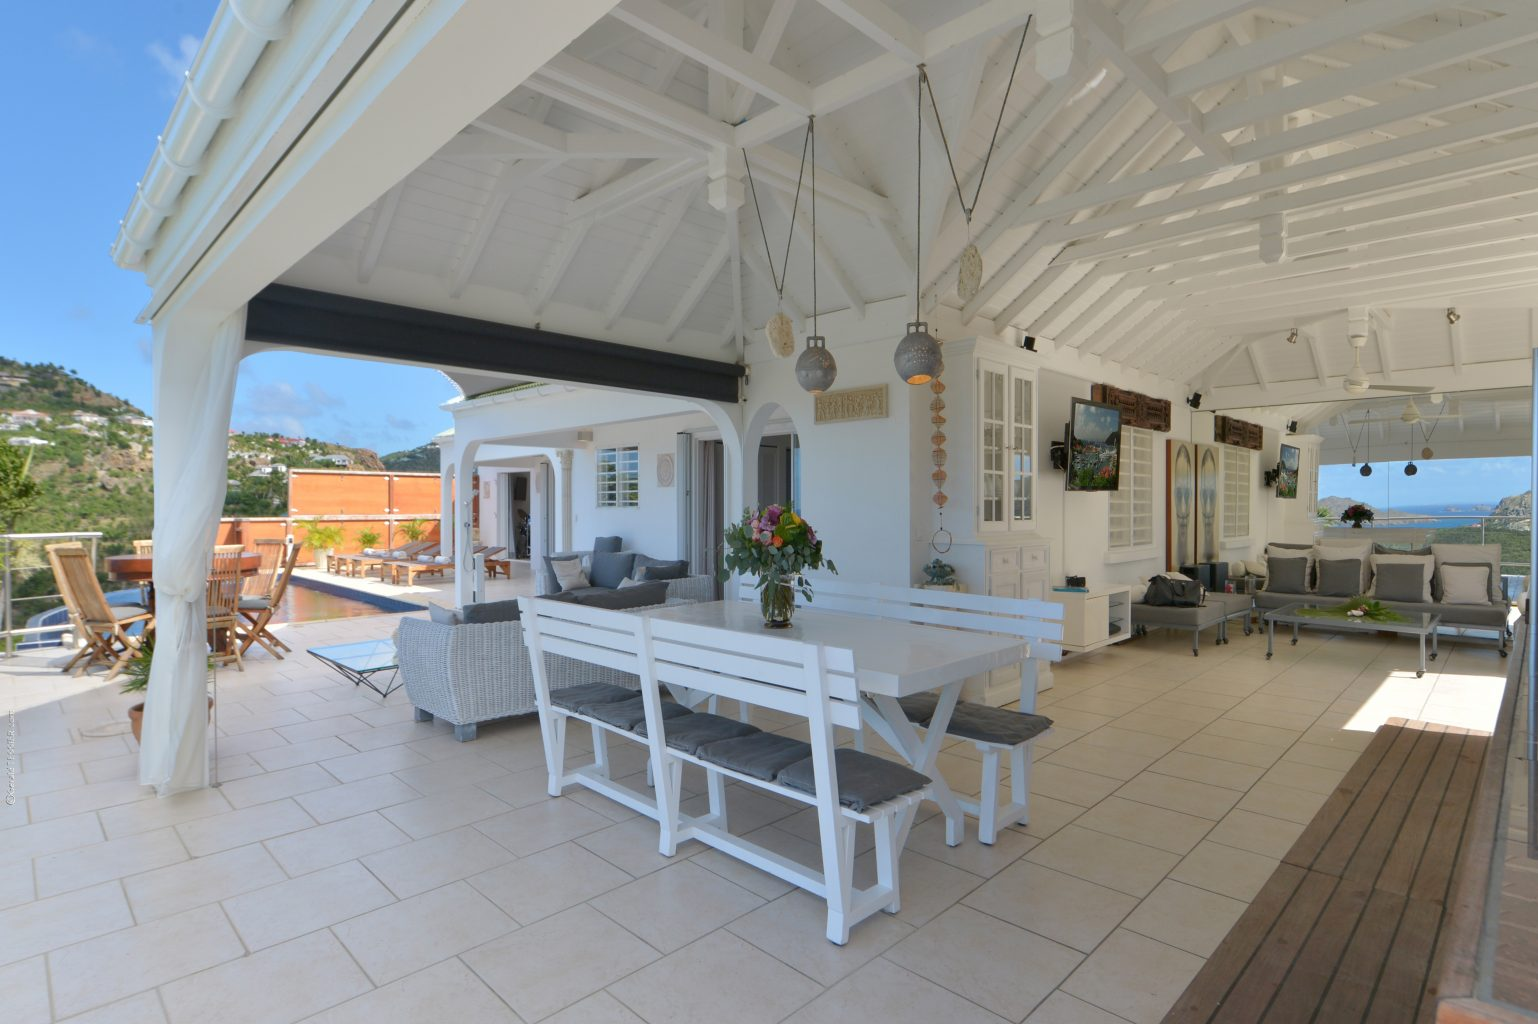 Villa Mystic - Seaview Villa for Rent St Barth with Panoramic View from Each Room - Main Area